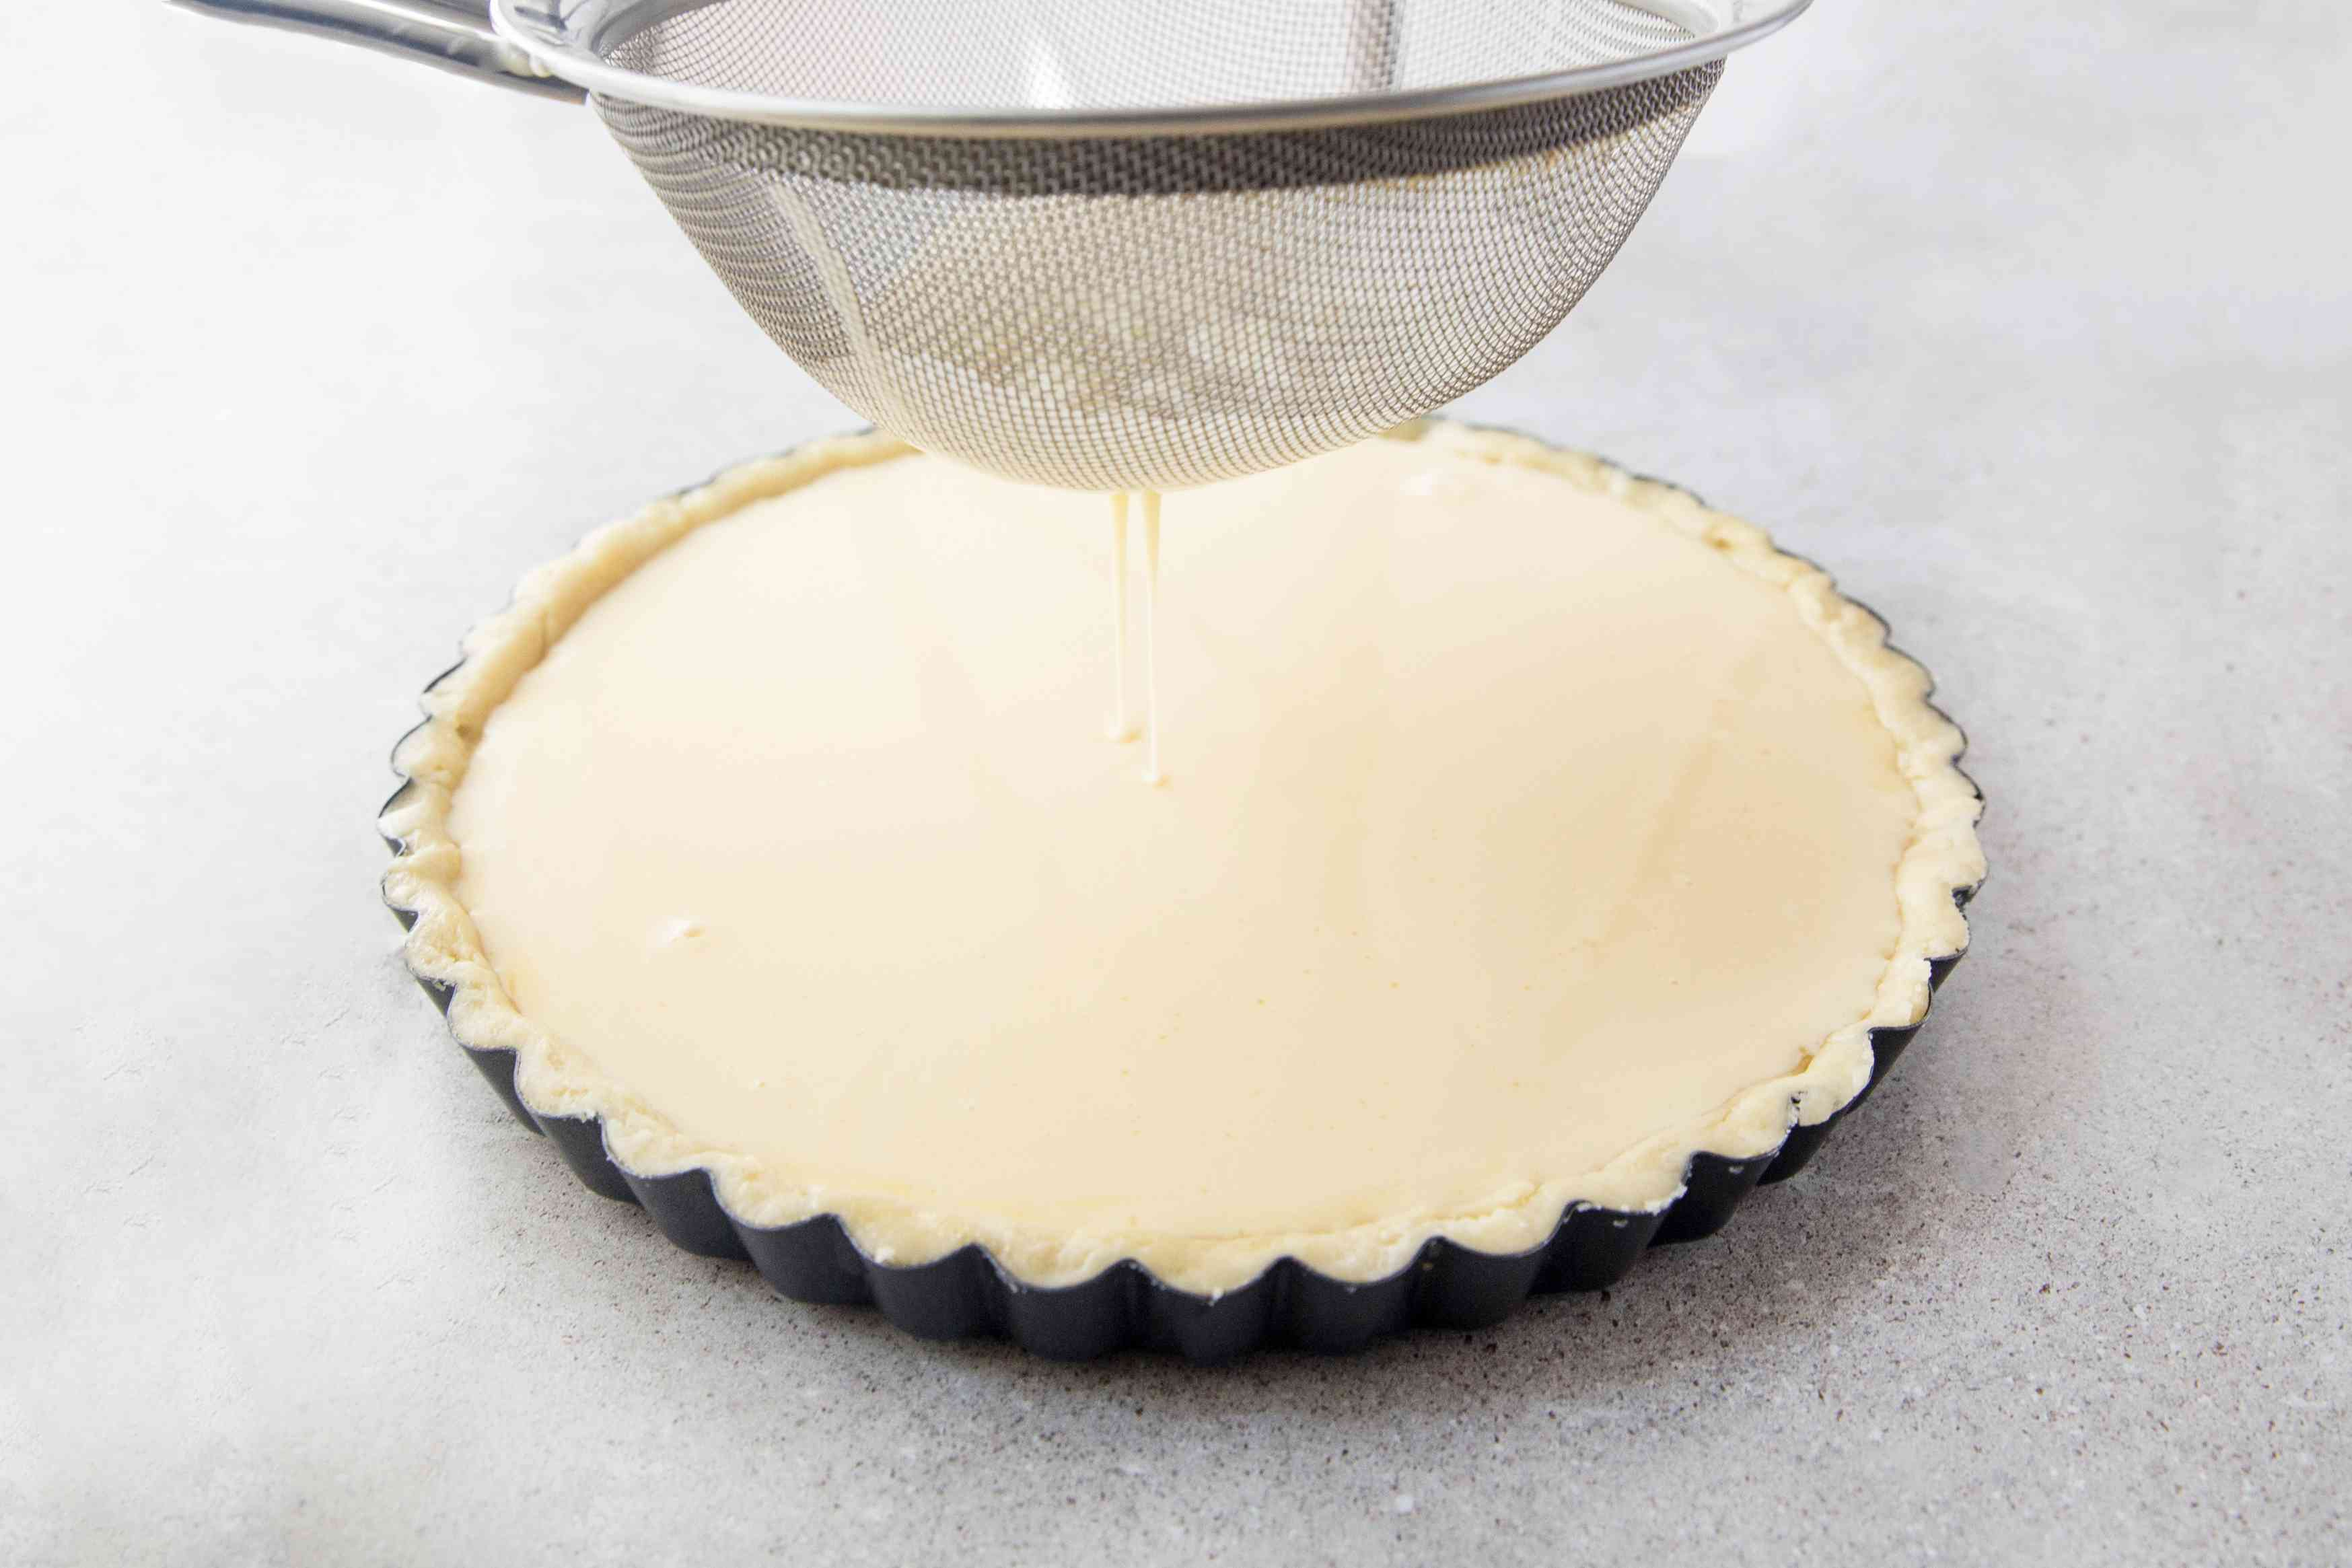 Pouring egg and cream into pastry case